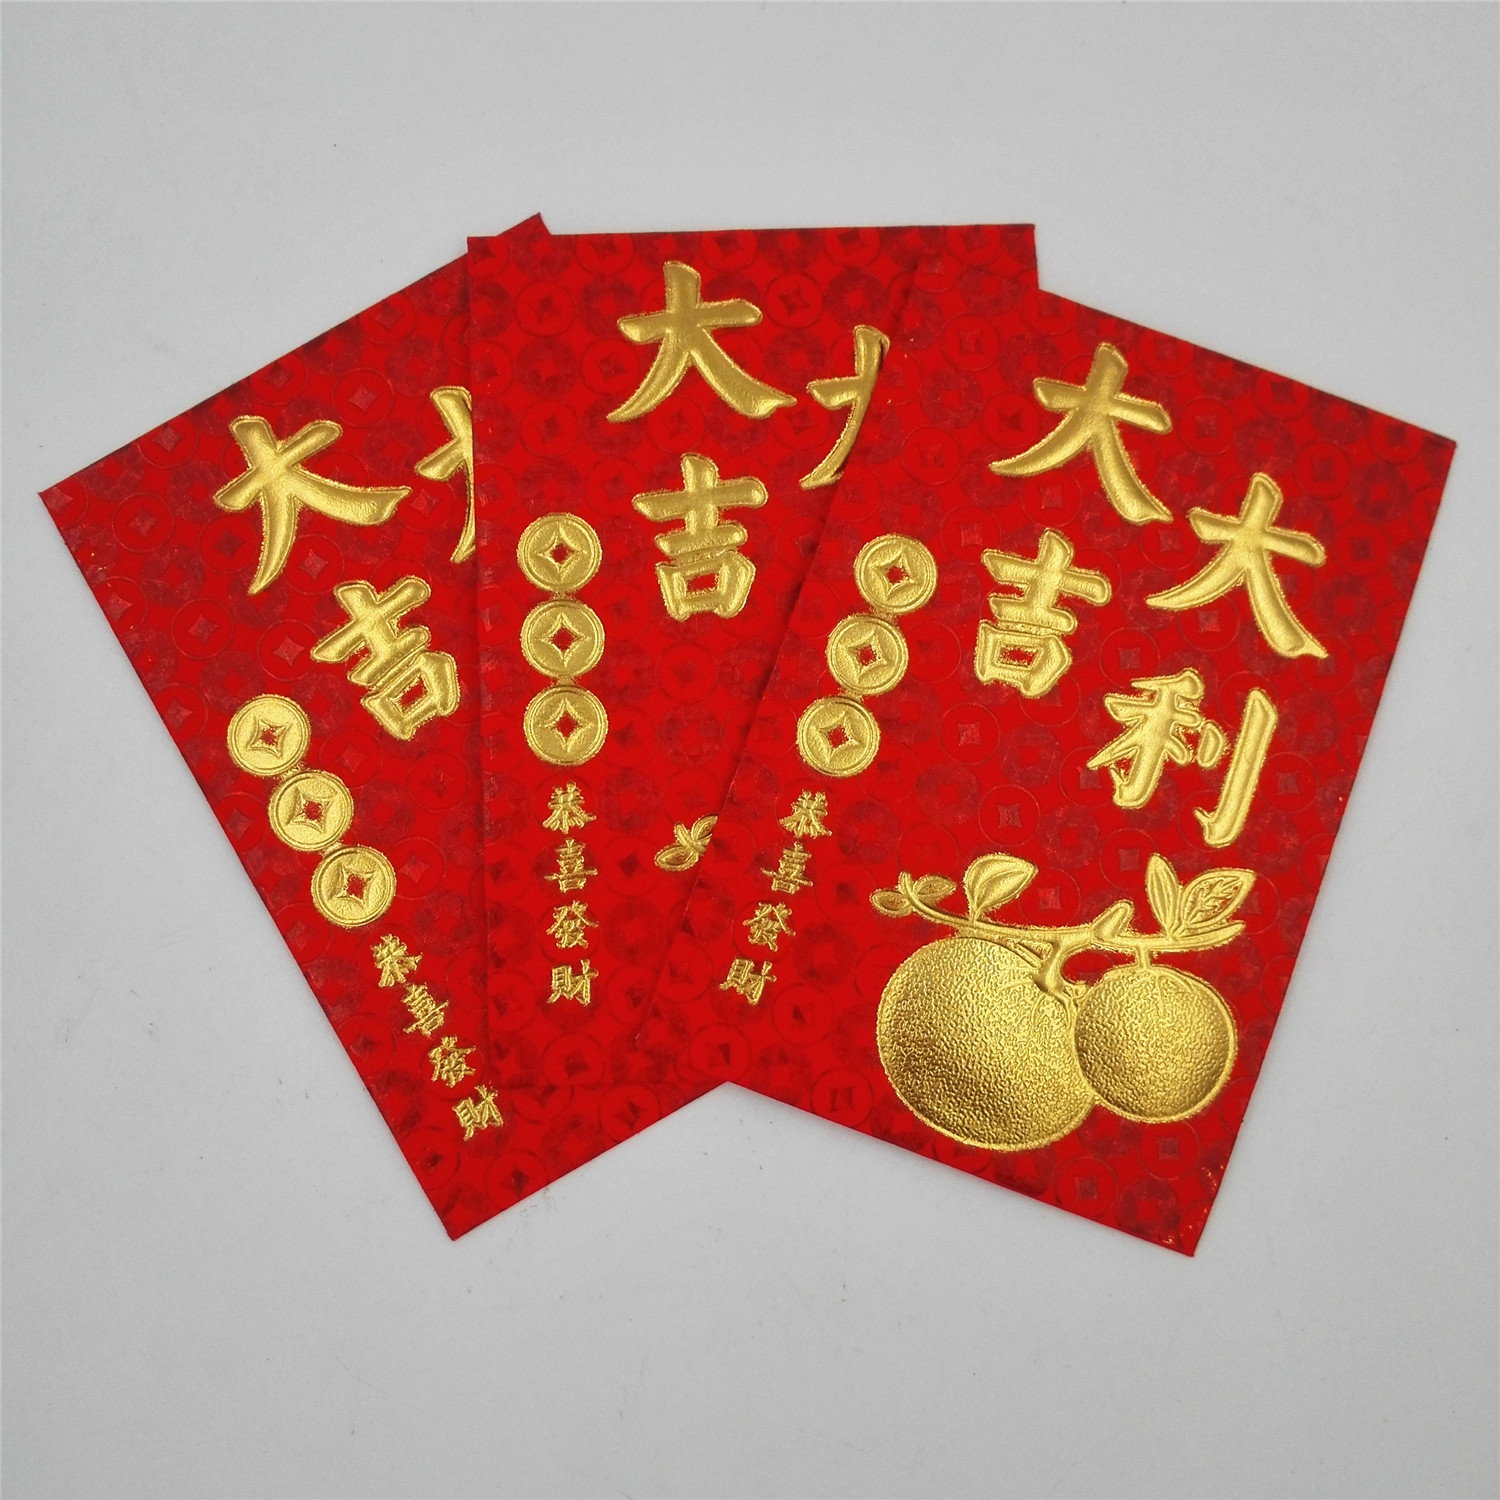 500 red packet red envelope chinese new year lucky money hongbao